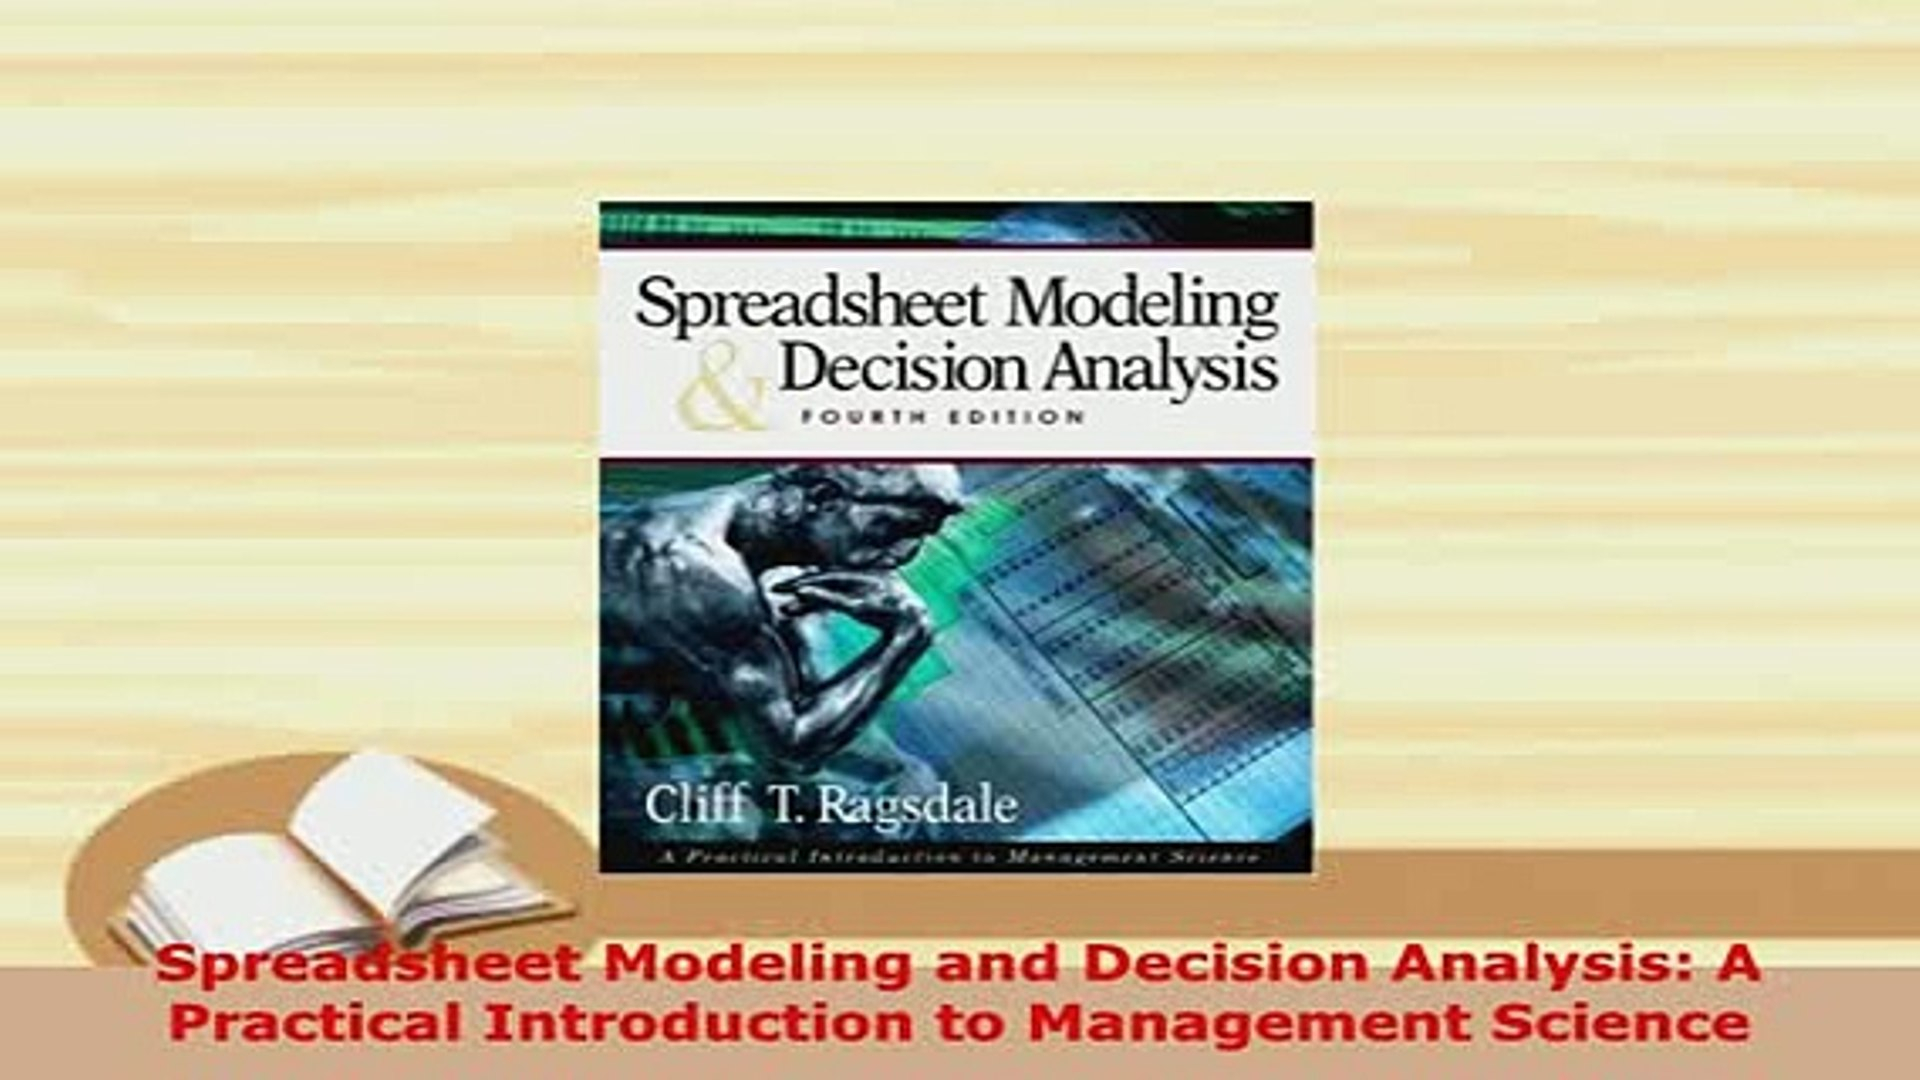 Spreadsheet Modeling And Decision Analysis Ebook Throughout Pdf Spreadsheet Modeling And Decision Analysis A Practical